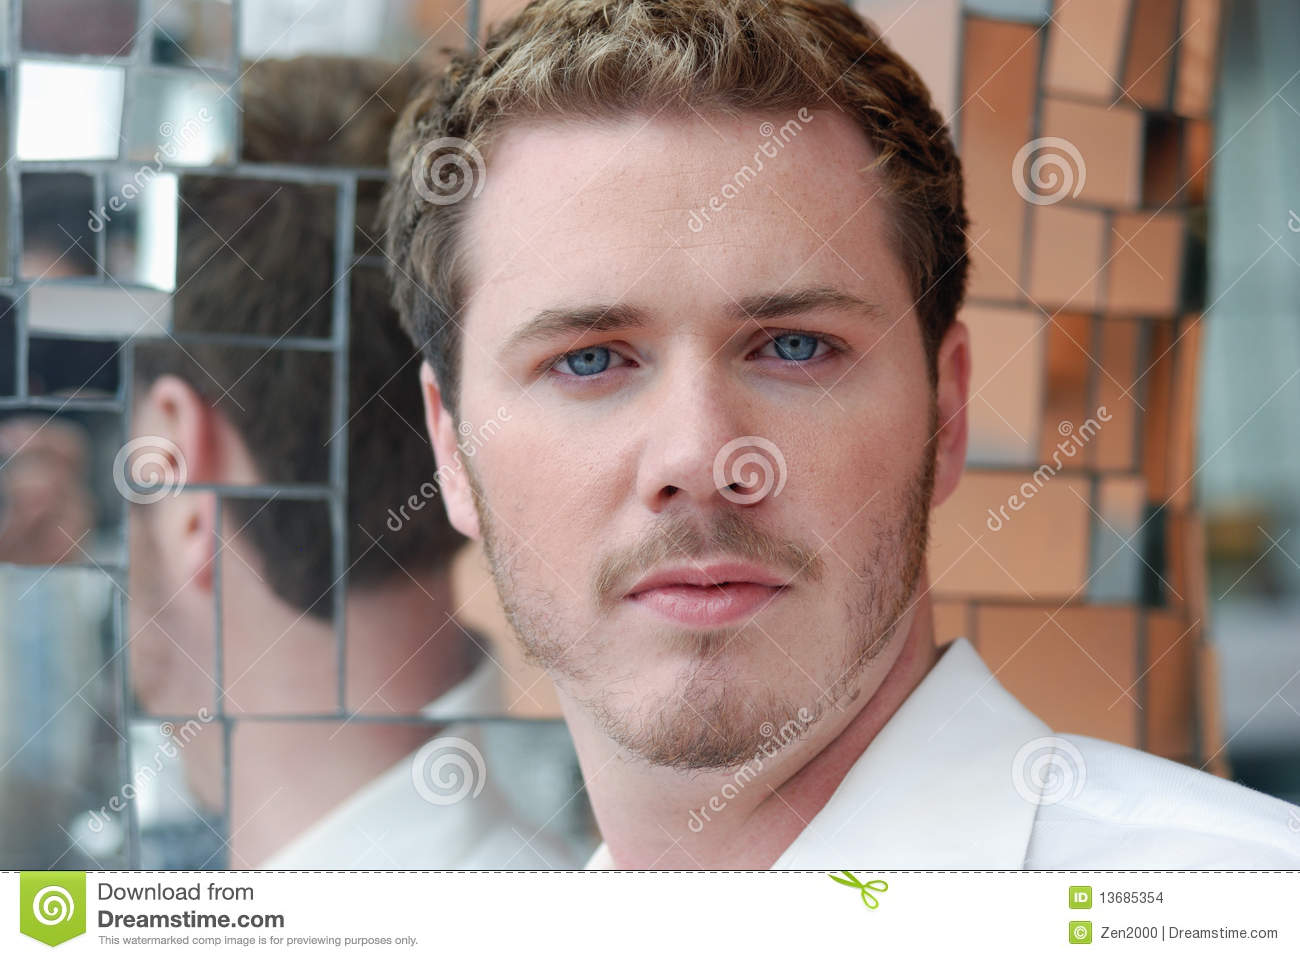 blonde-hair-man-blue-eyes-13685354.jpg